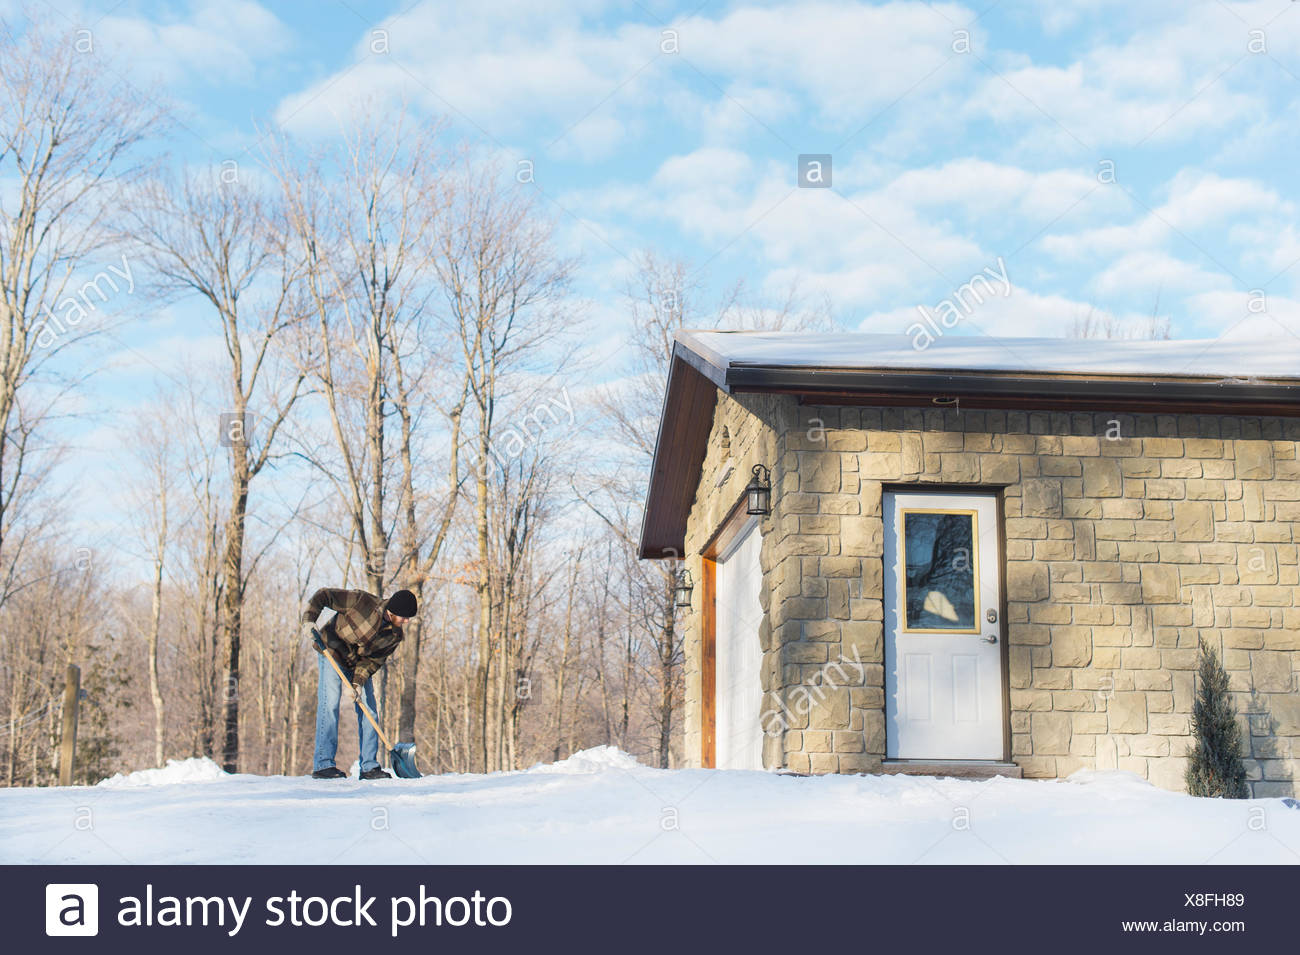 Homme de pelleter de la neige, Young's Point, Ontario, Canada Photo Stock